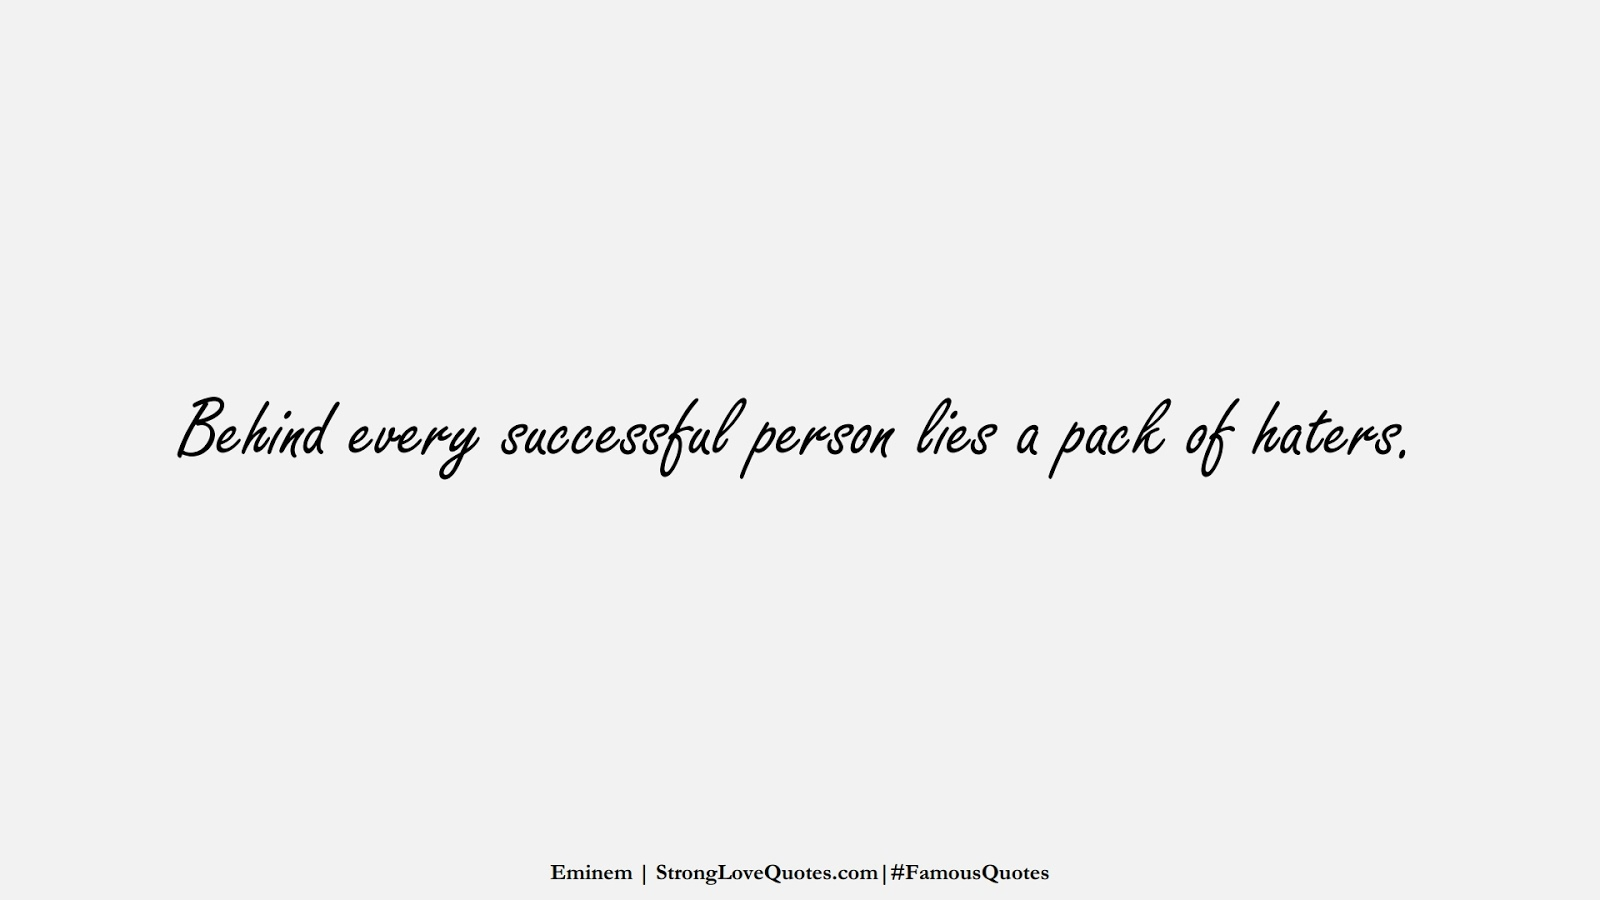 Behind every successful person lies a pack of haters. (Eminem);  #FamousQuotes